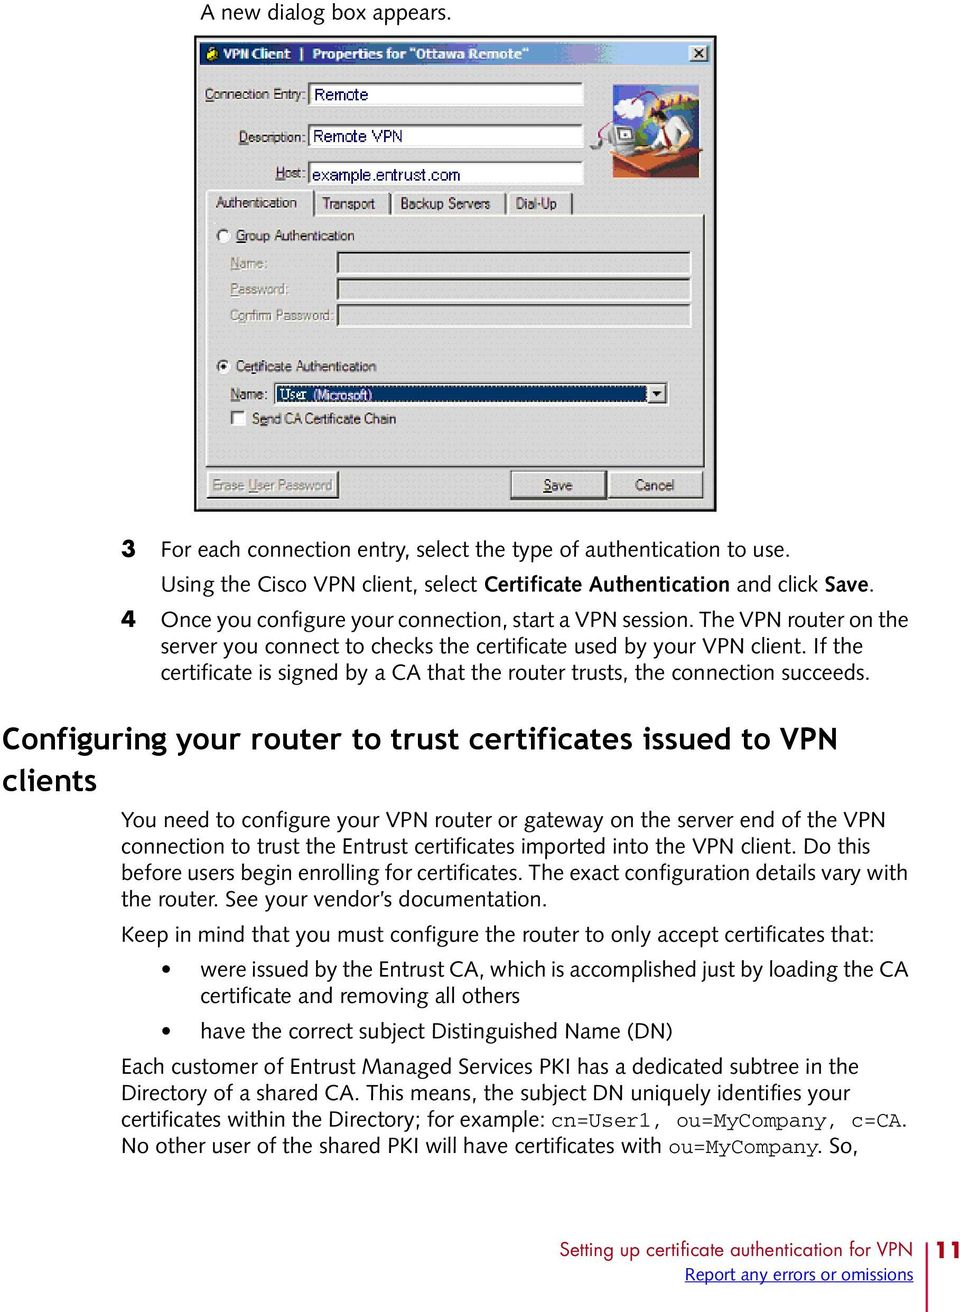 If the certificate is signed by a CA that the router trusts, the connection succeeds.